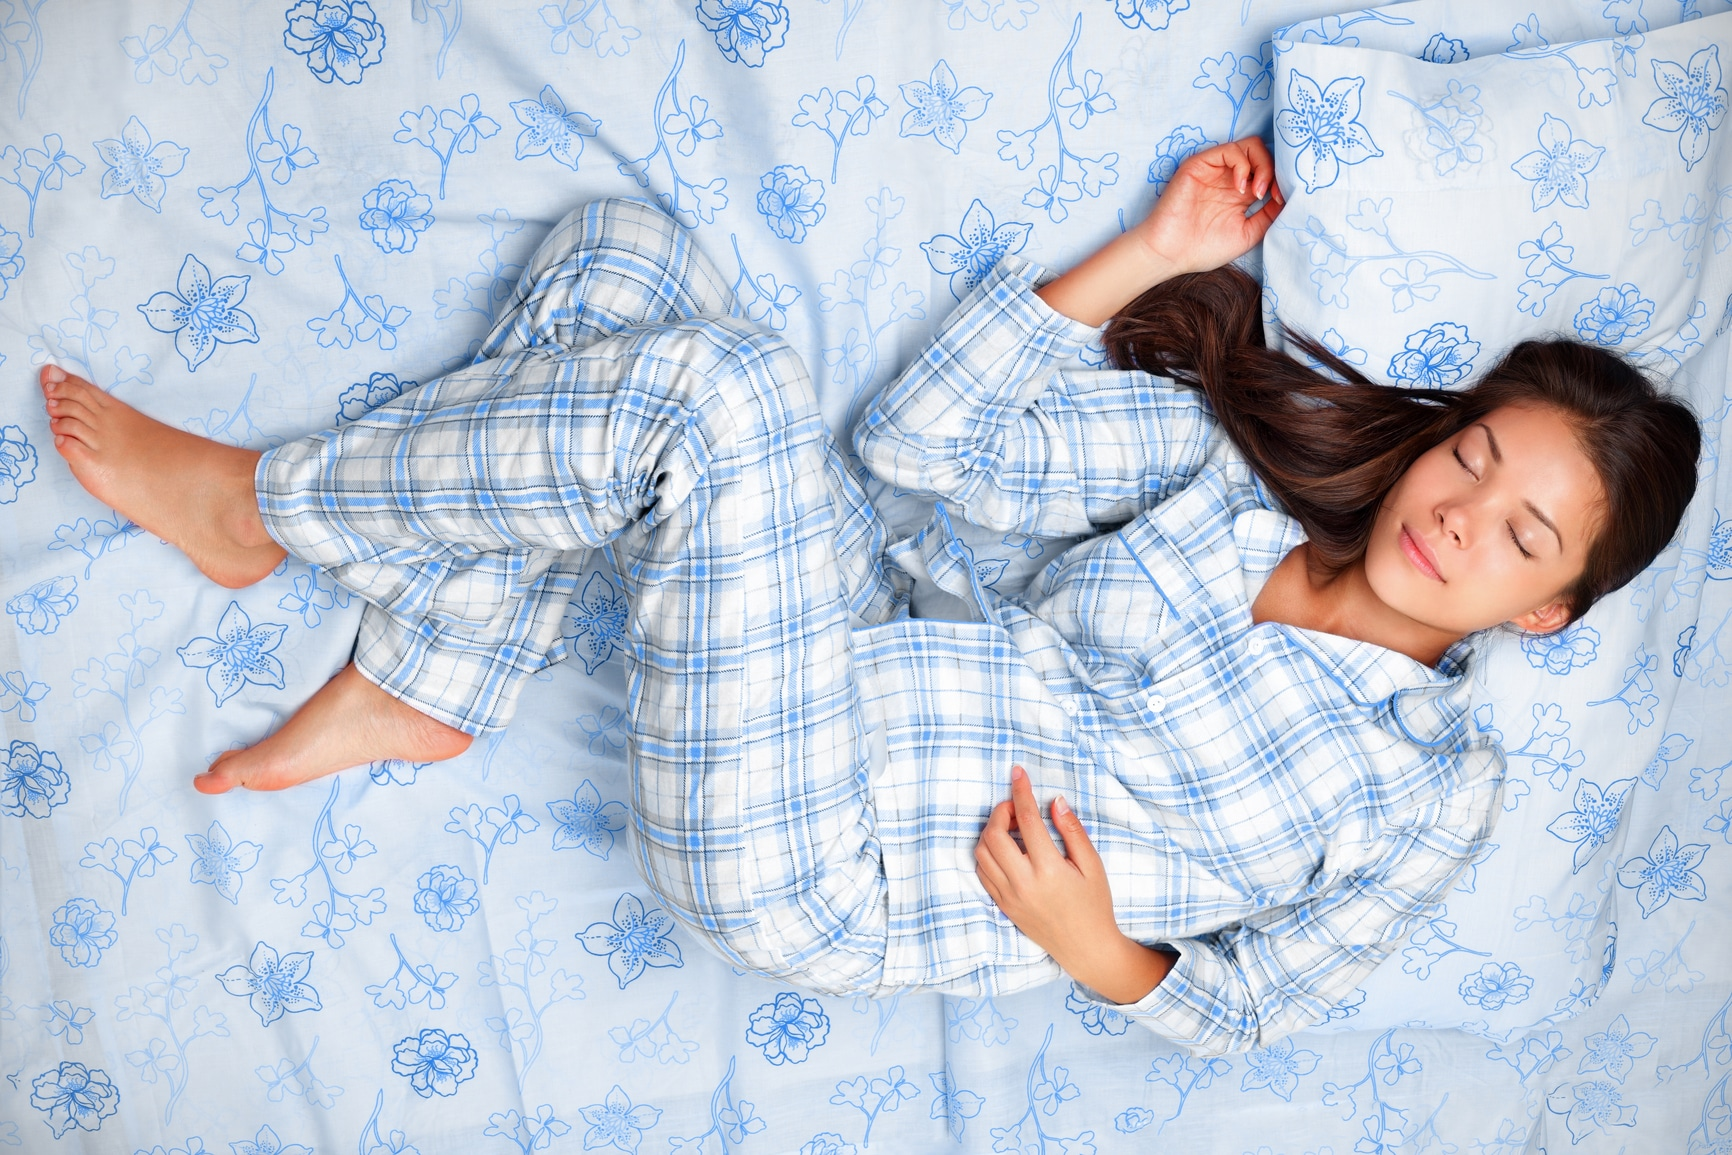 calories sleeping - THE BEST SLEEP TIPS! Good sleep habits are very important for a healthy sleep